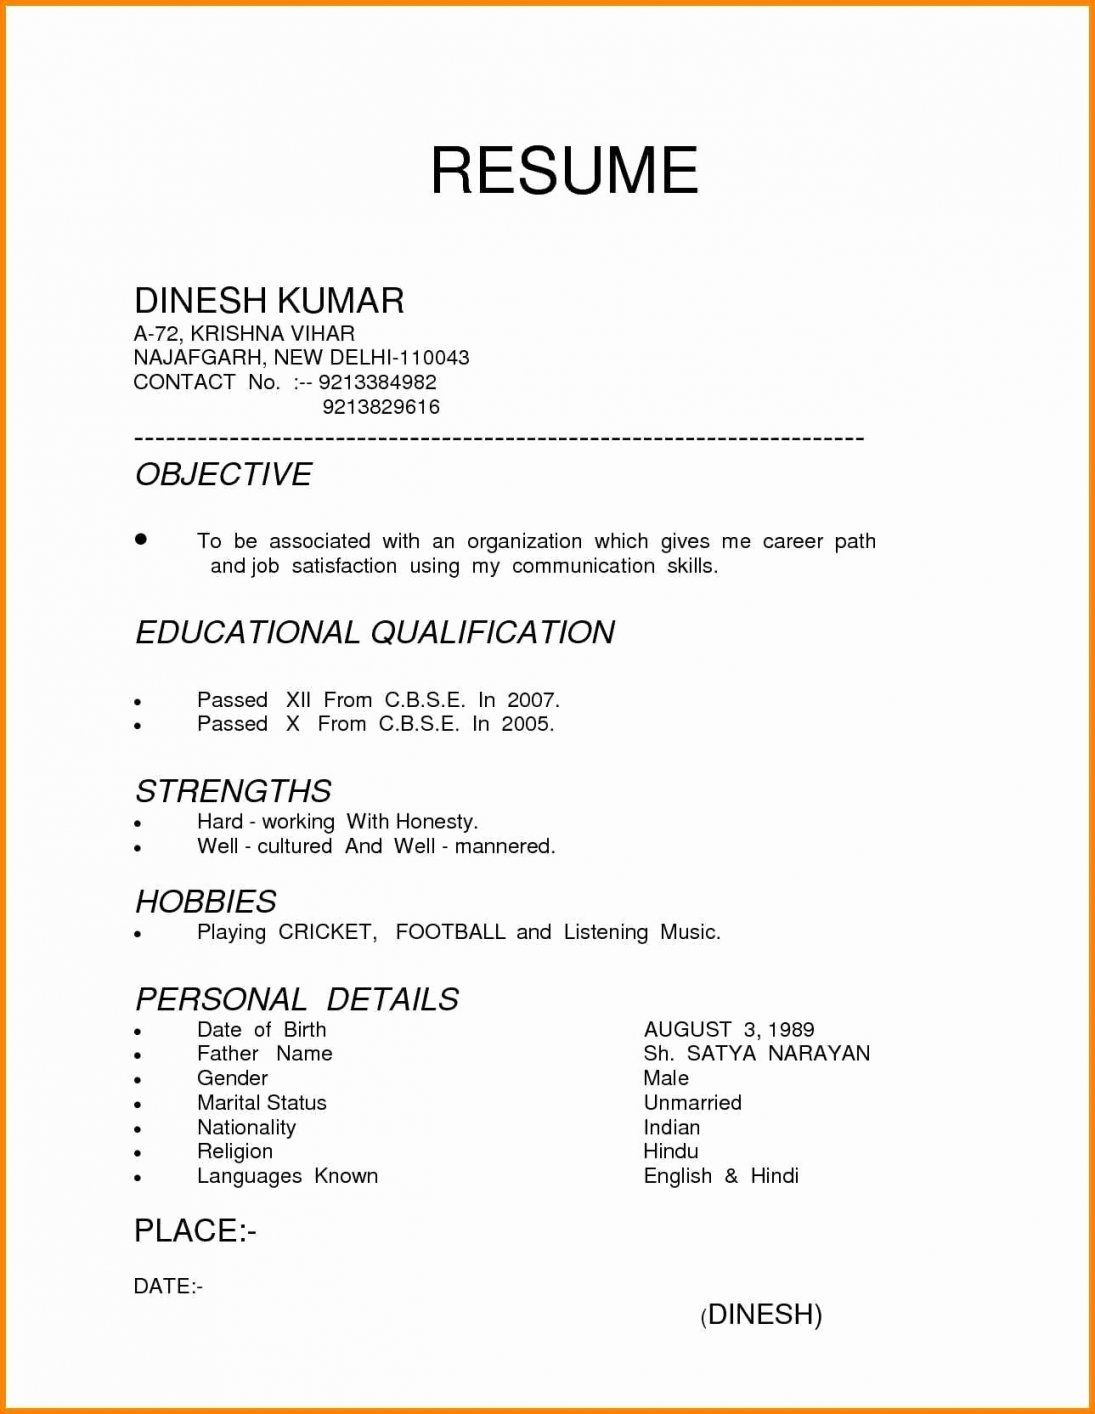 7 Different Resume Formats Resume format examples